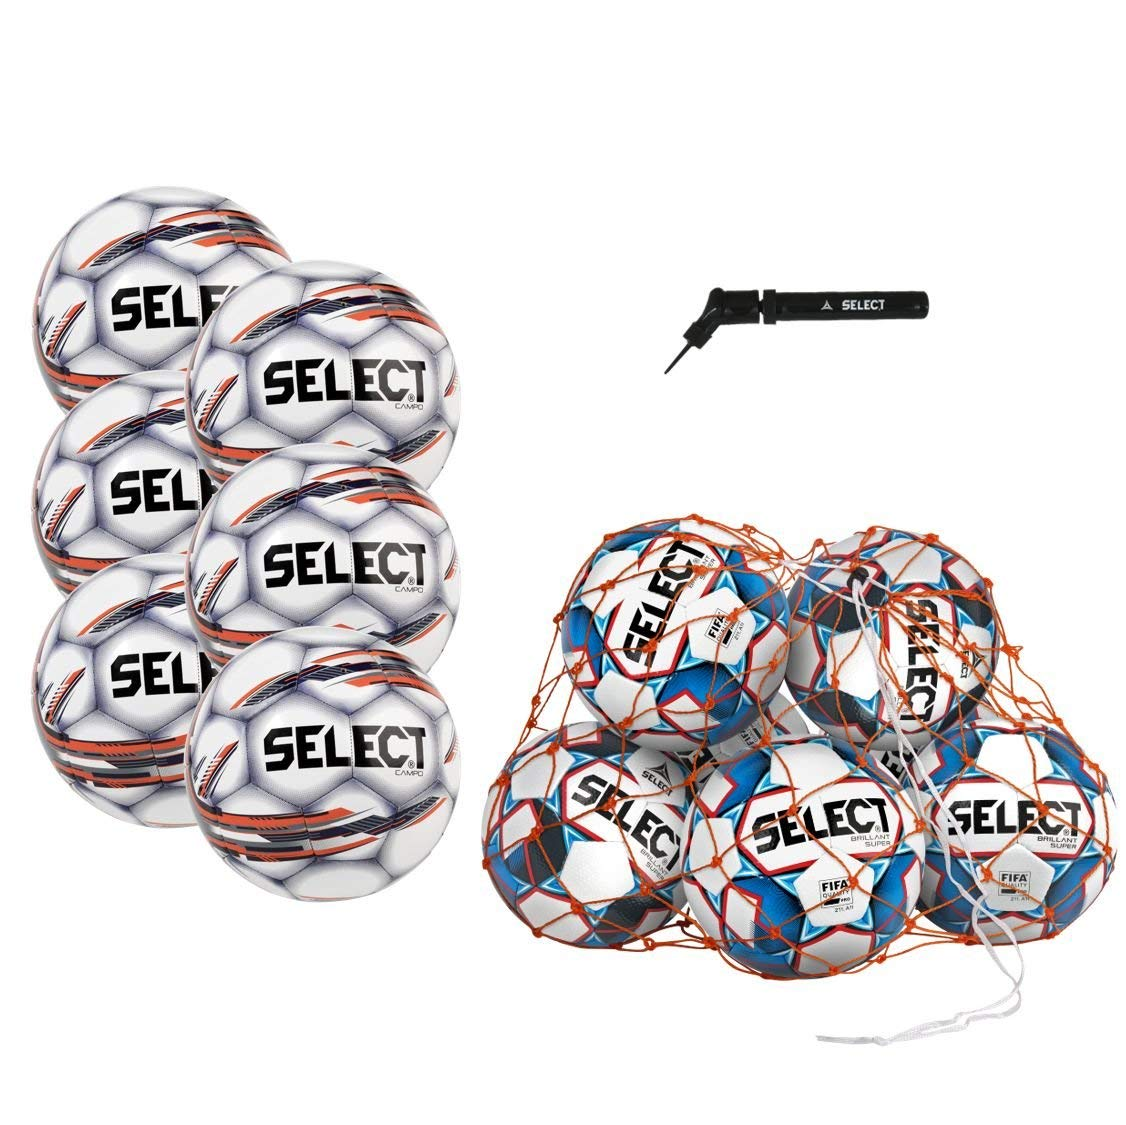 Select Campo Soccer Ball Package - Pack of 6 Soccer Balls Ball Net Hand Pump, White, Size 5